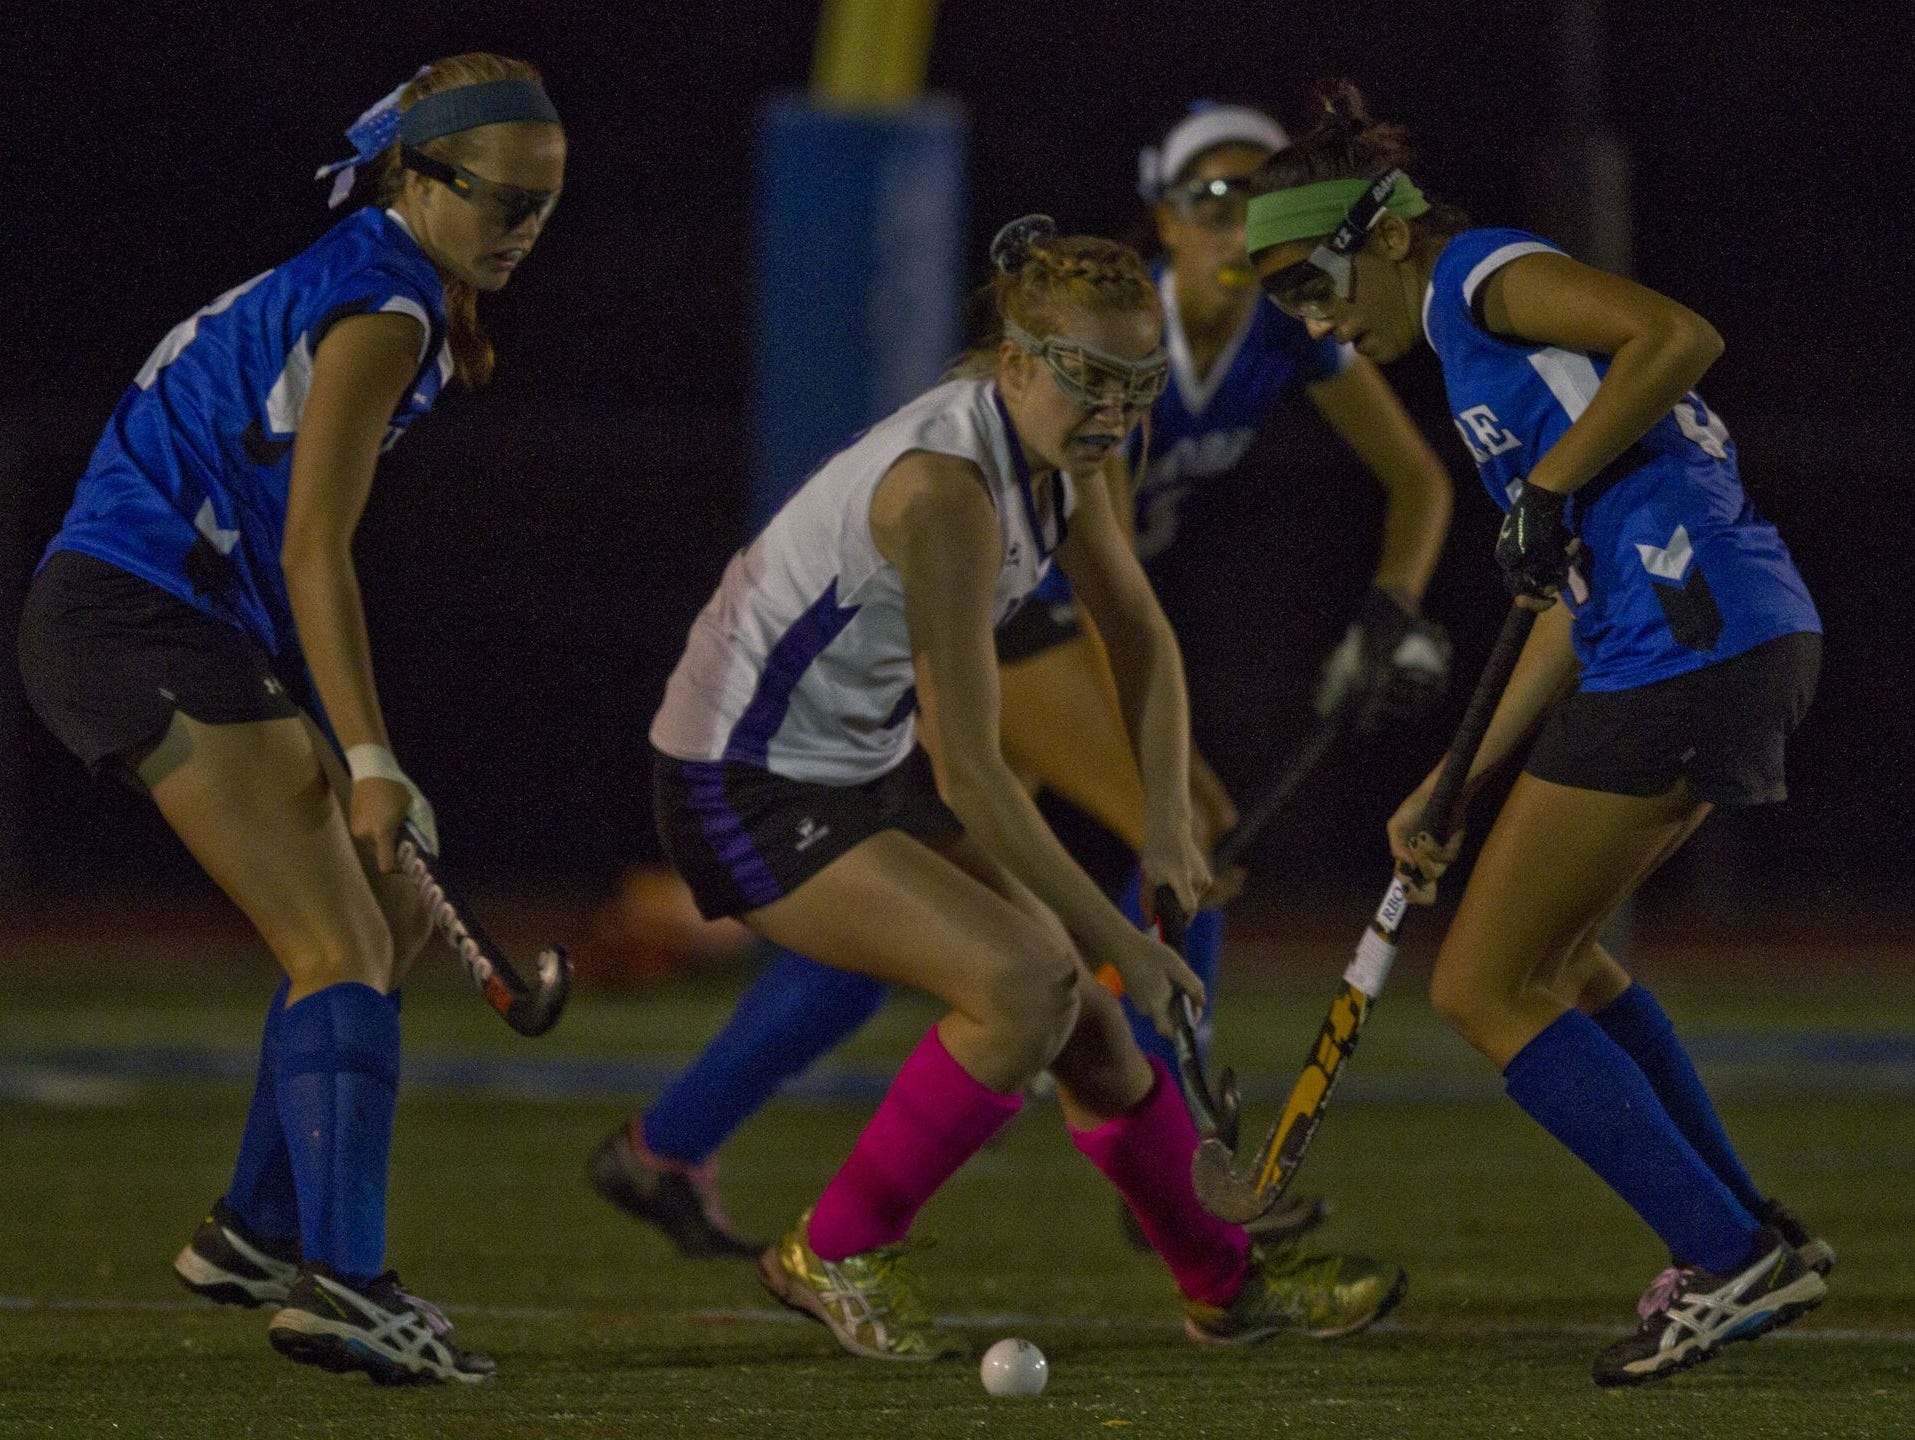 The Rumson-Fair Haven field hockey team takes on Shore Regional in the 2015 SCT final